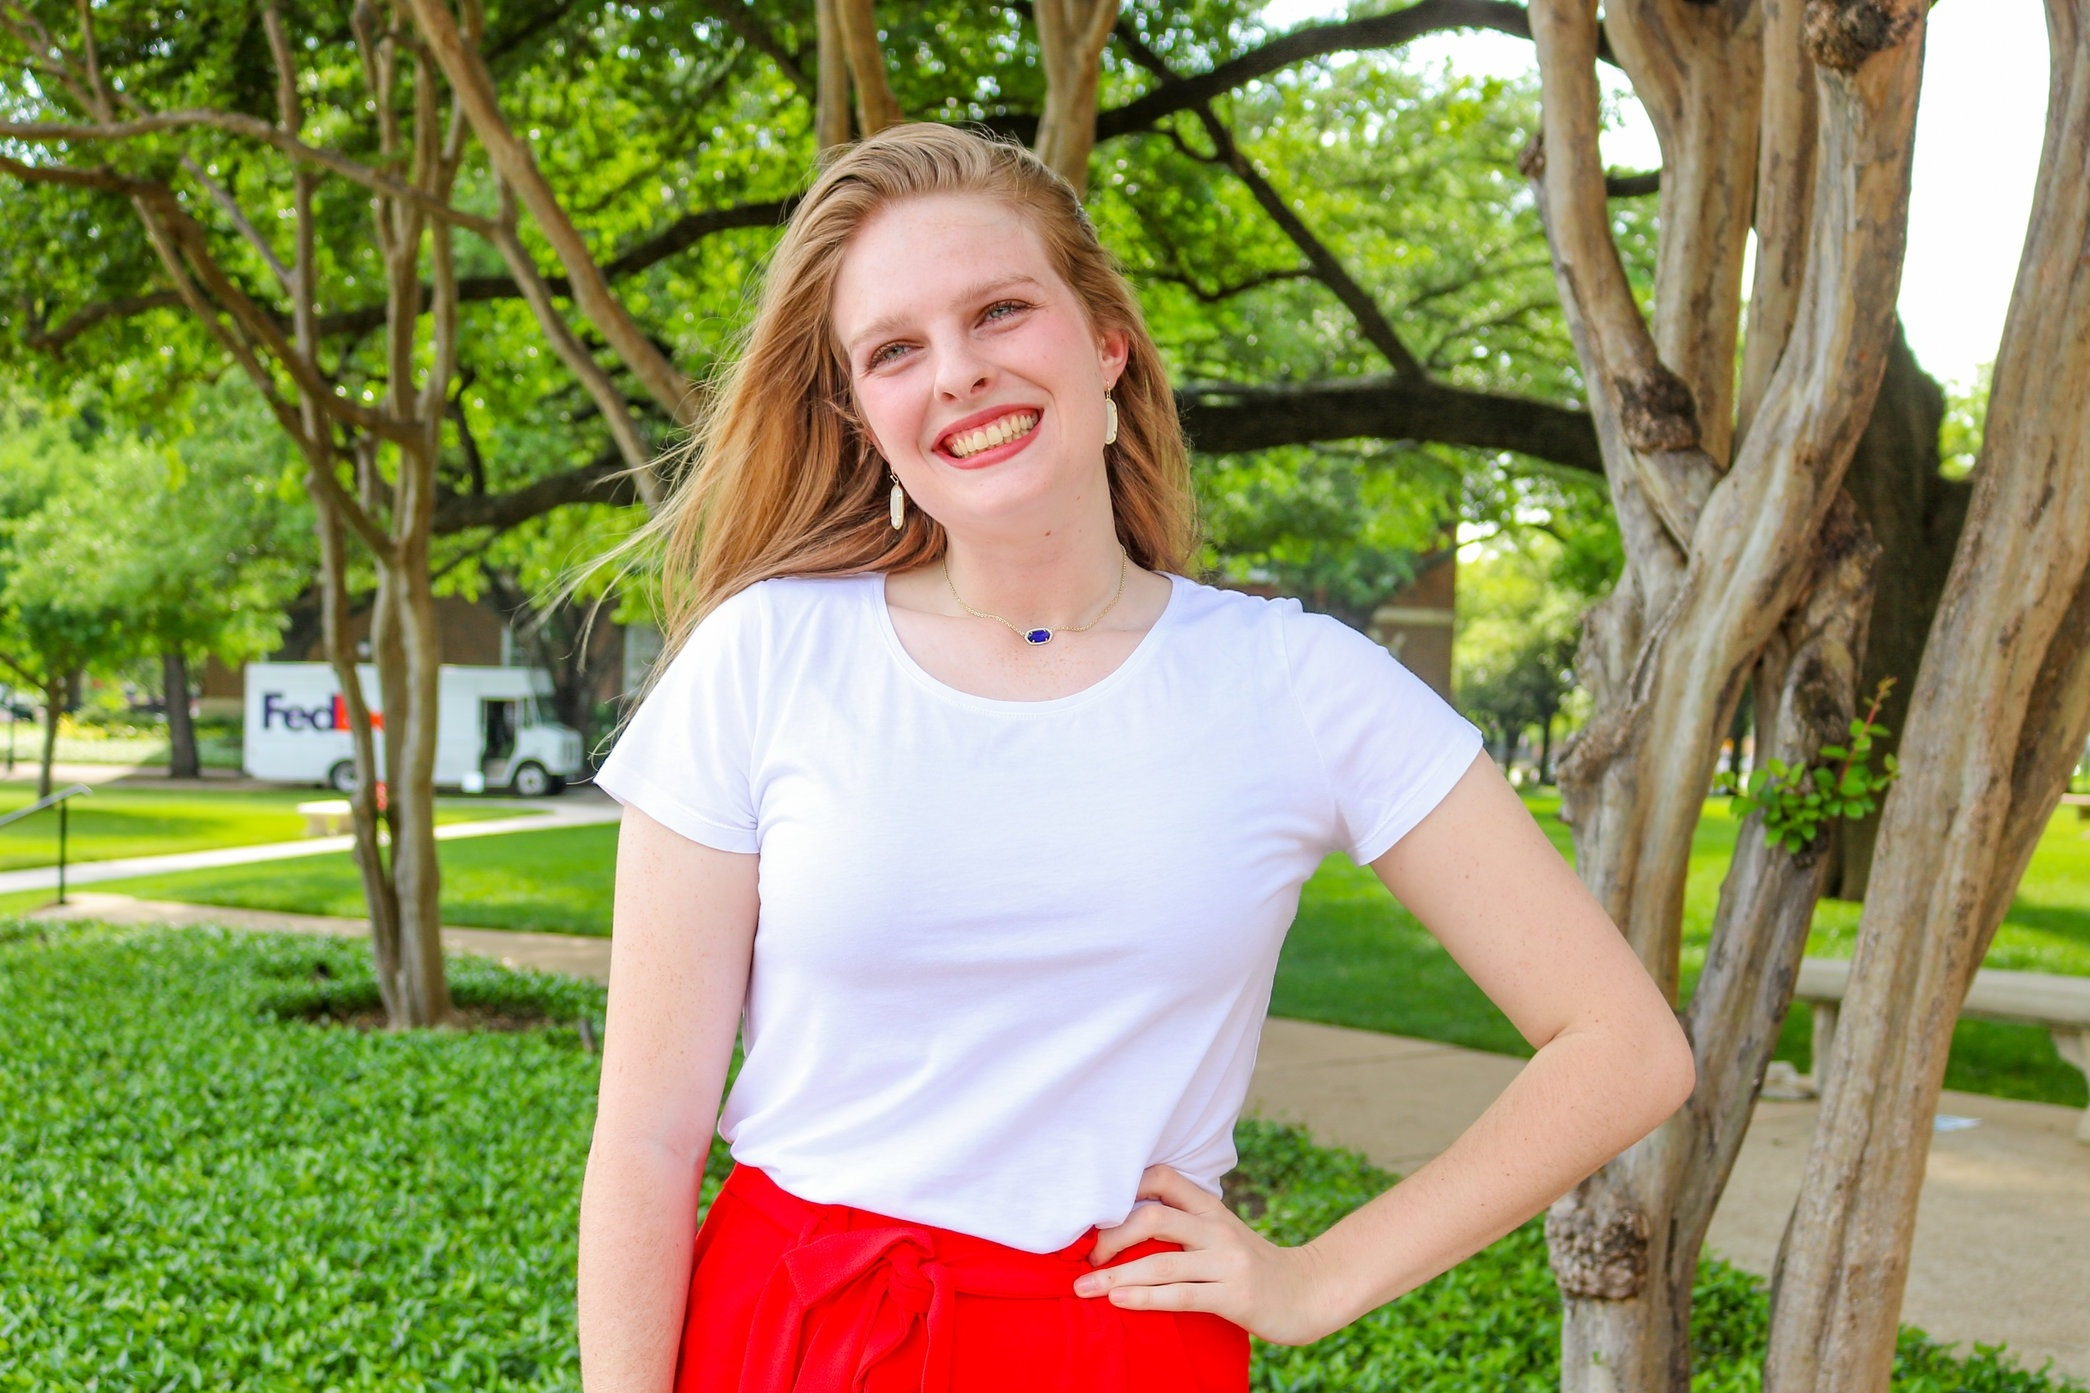 "JuliaGrace, also known as ""JG"", is a sophomore from San Antonio, Texas. She is majoring in International Studies and Economics with a minor in Spanish. She is passionate about traveling, food, and coffee. In addition to being president of Boaz, she is involved in Program Council, Consult Your Community, and RUF Campus Ministry. Her favorite memory in Boaz was last year's formal, Bows + Bow Ties, at the Dallas Arboretum."